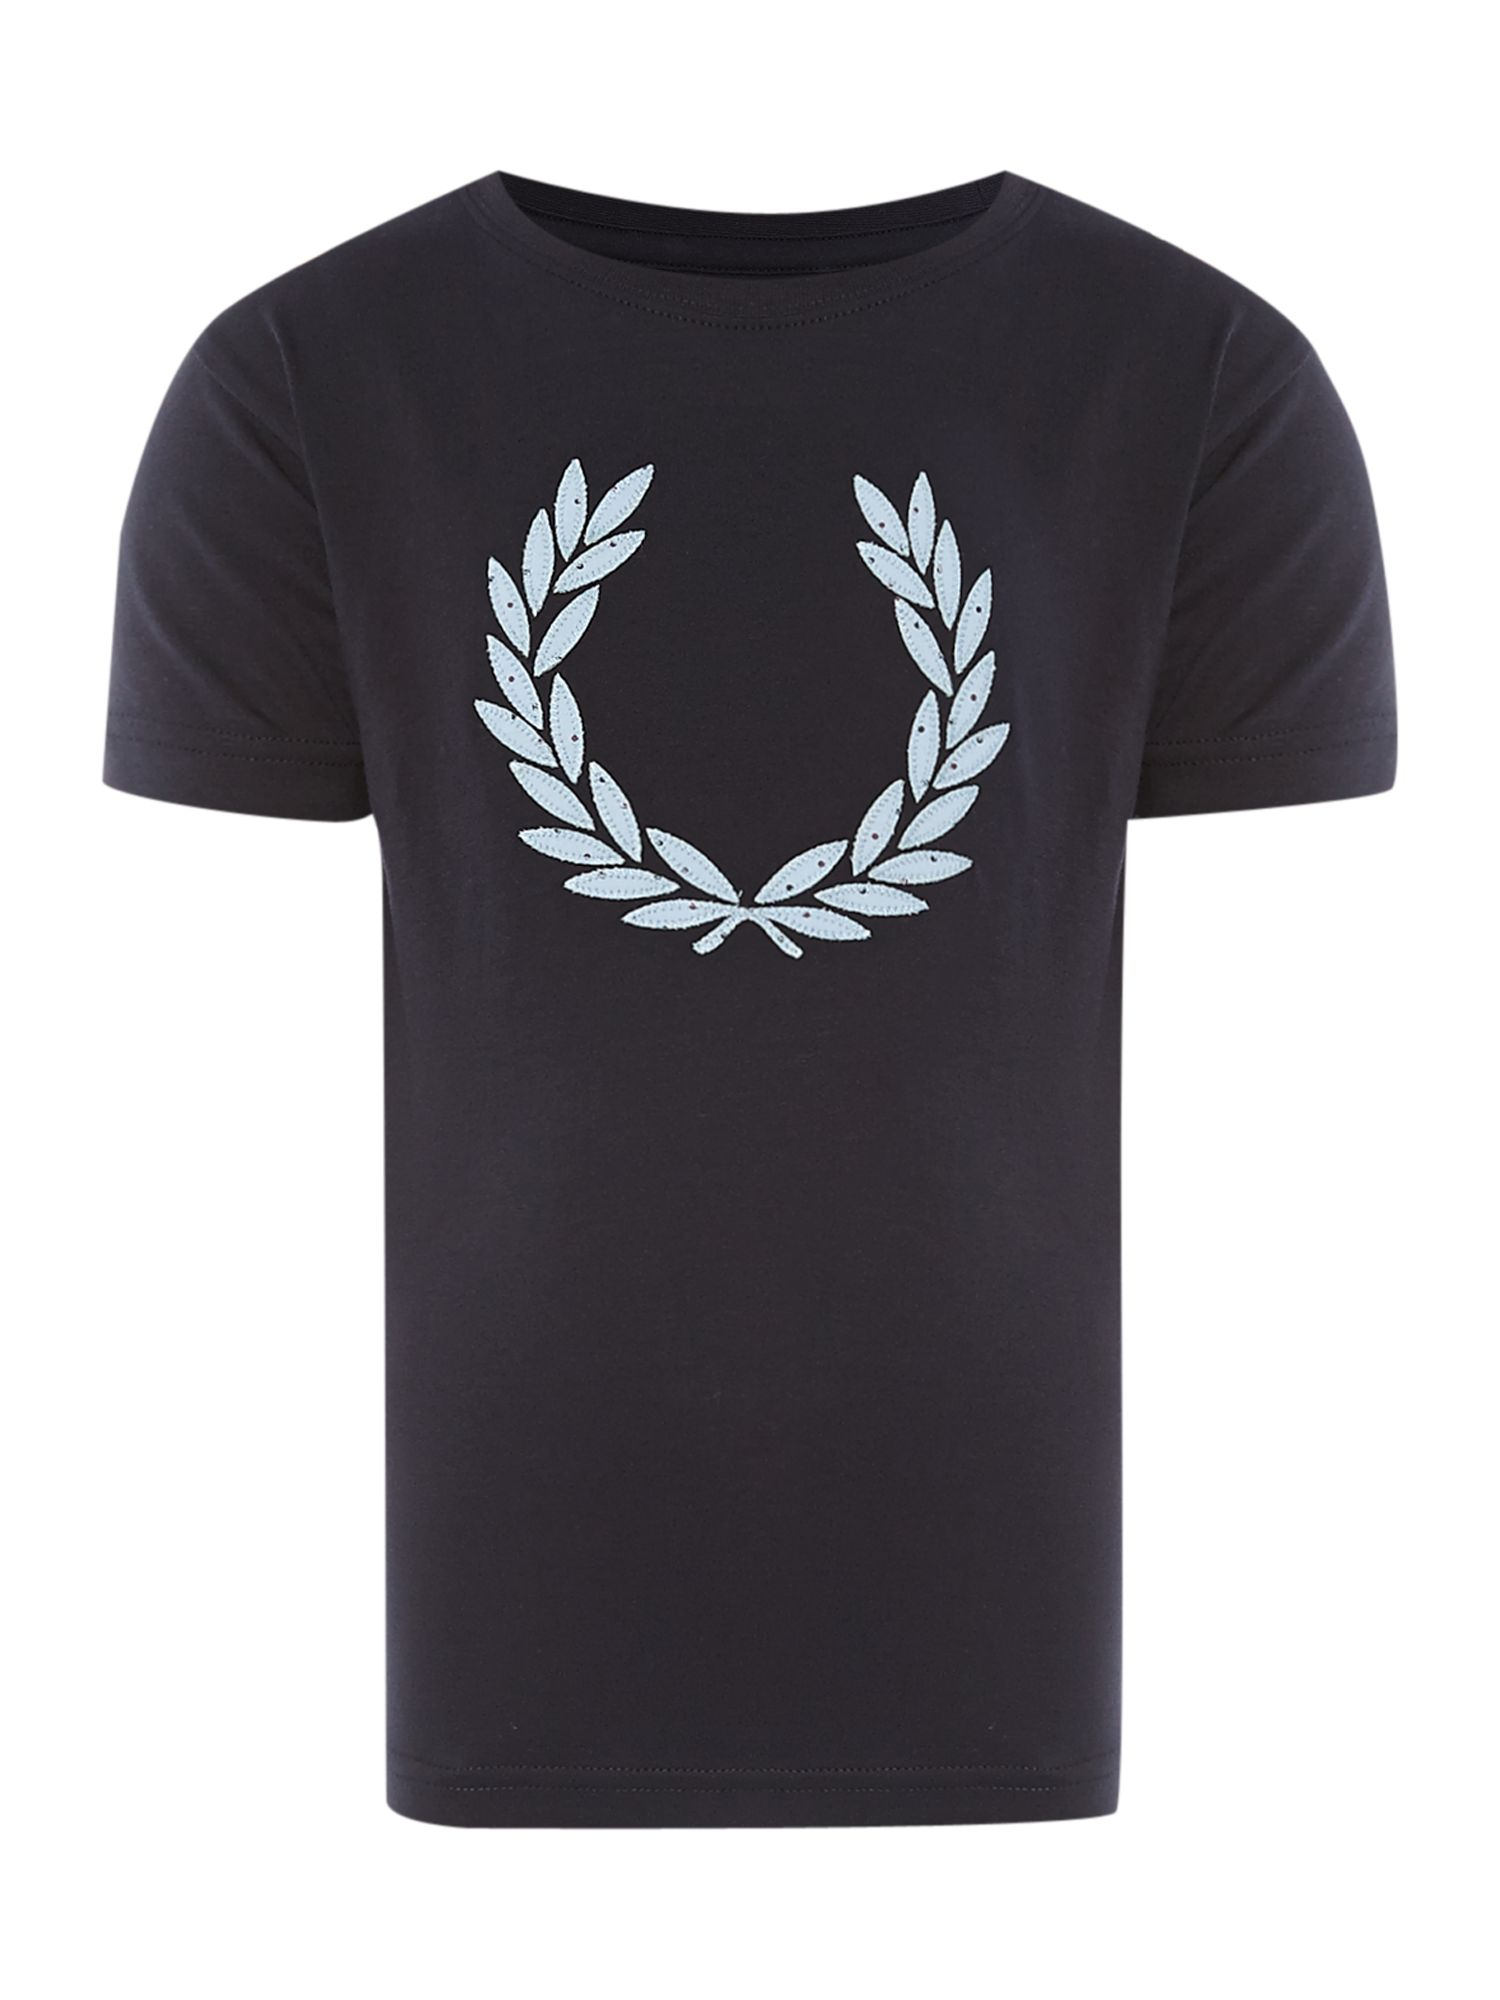 Laurel applique t-shirt